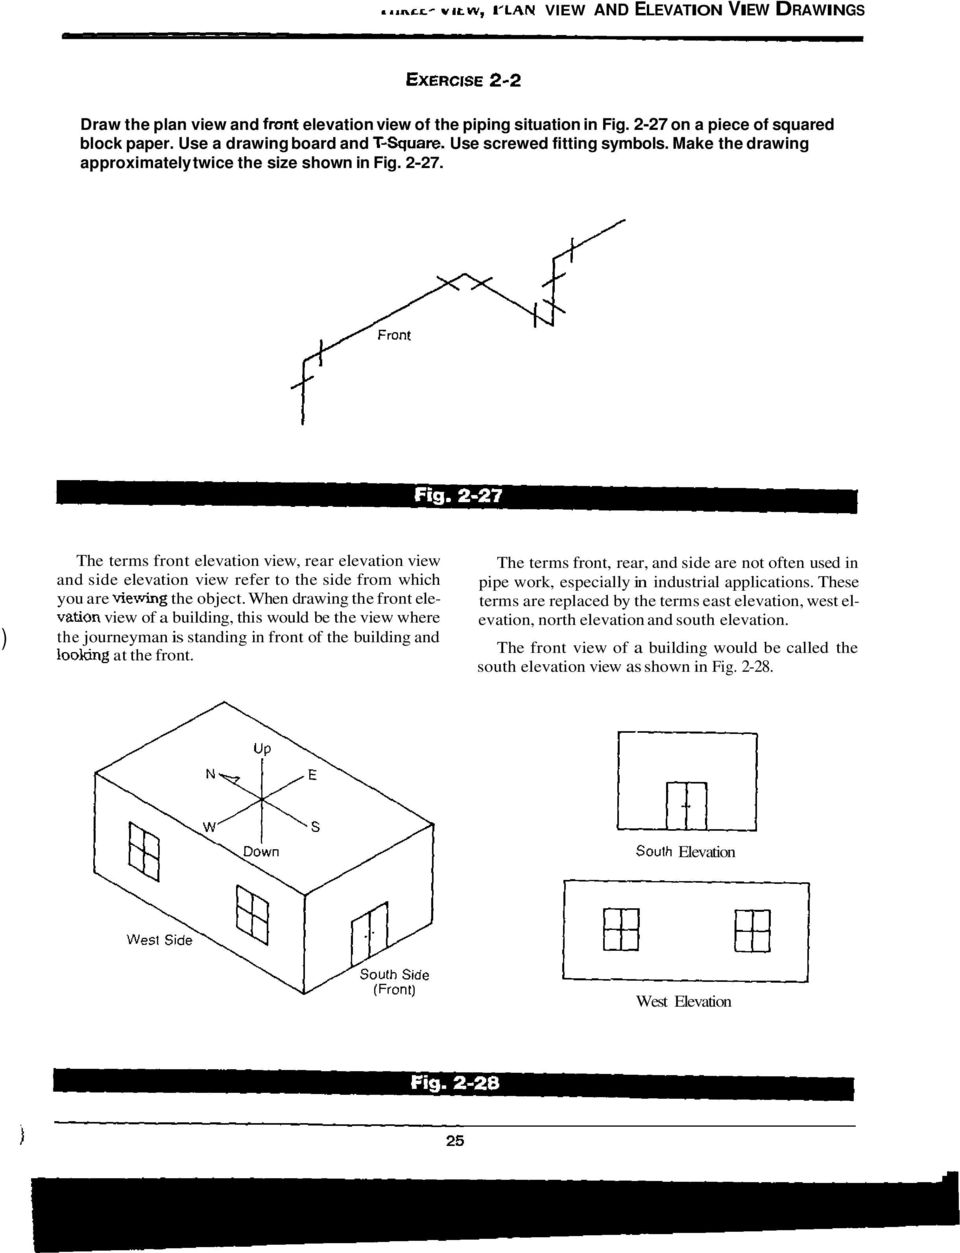 Plan And Elevation Of Cylinder : Three view plan and elevation drawings pdf